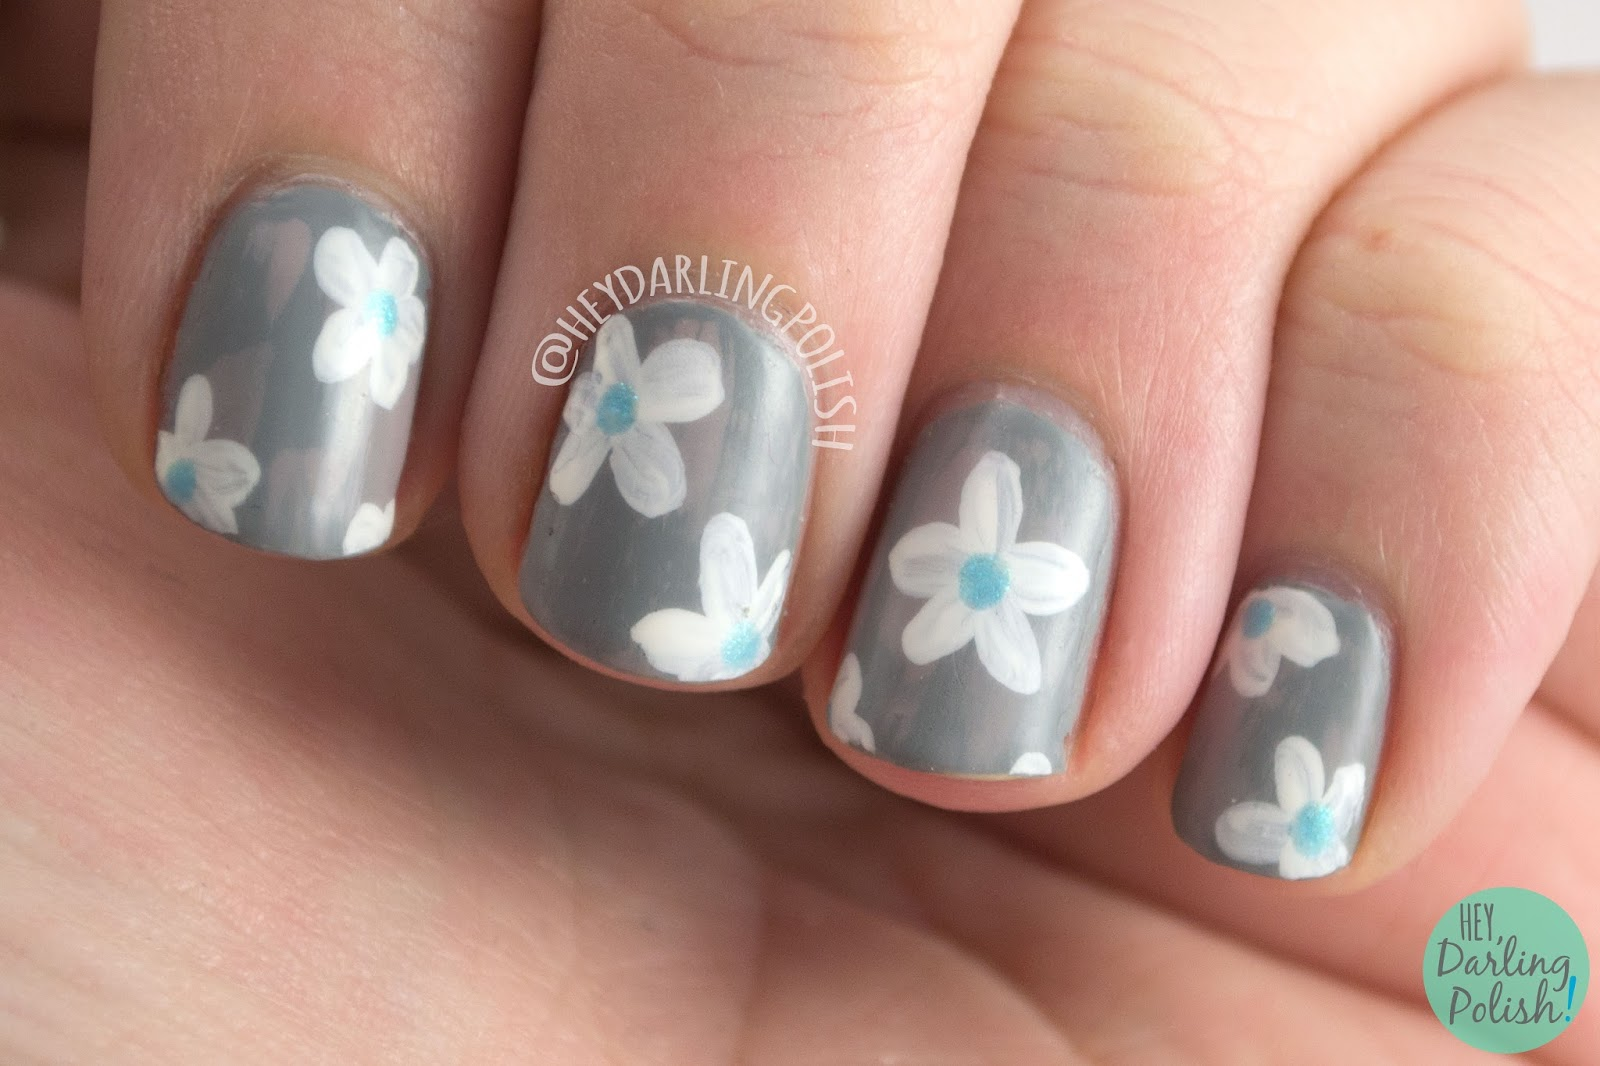 nails, nail art, nail polish, floral, flowers, zoya, satins, hey darling polish, distressed brushstroke, neutral, freehand